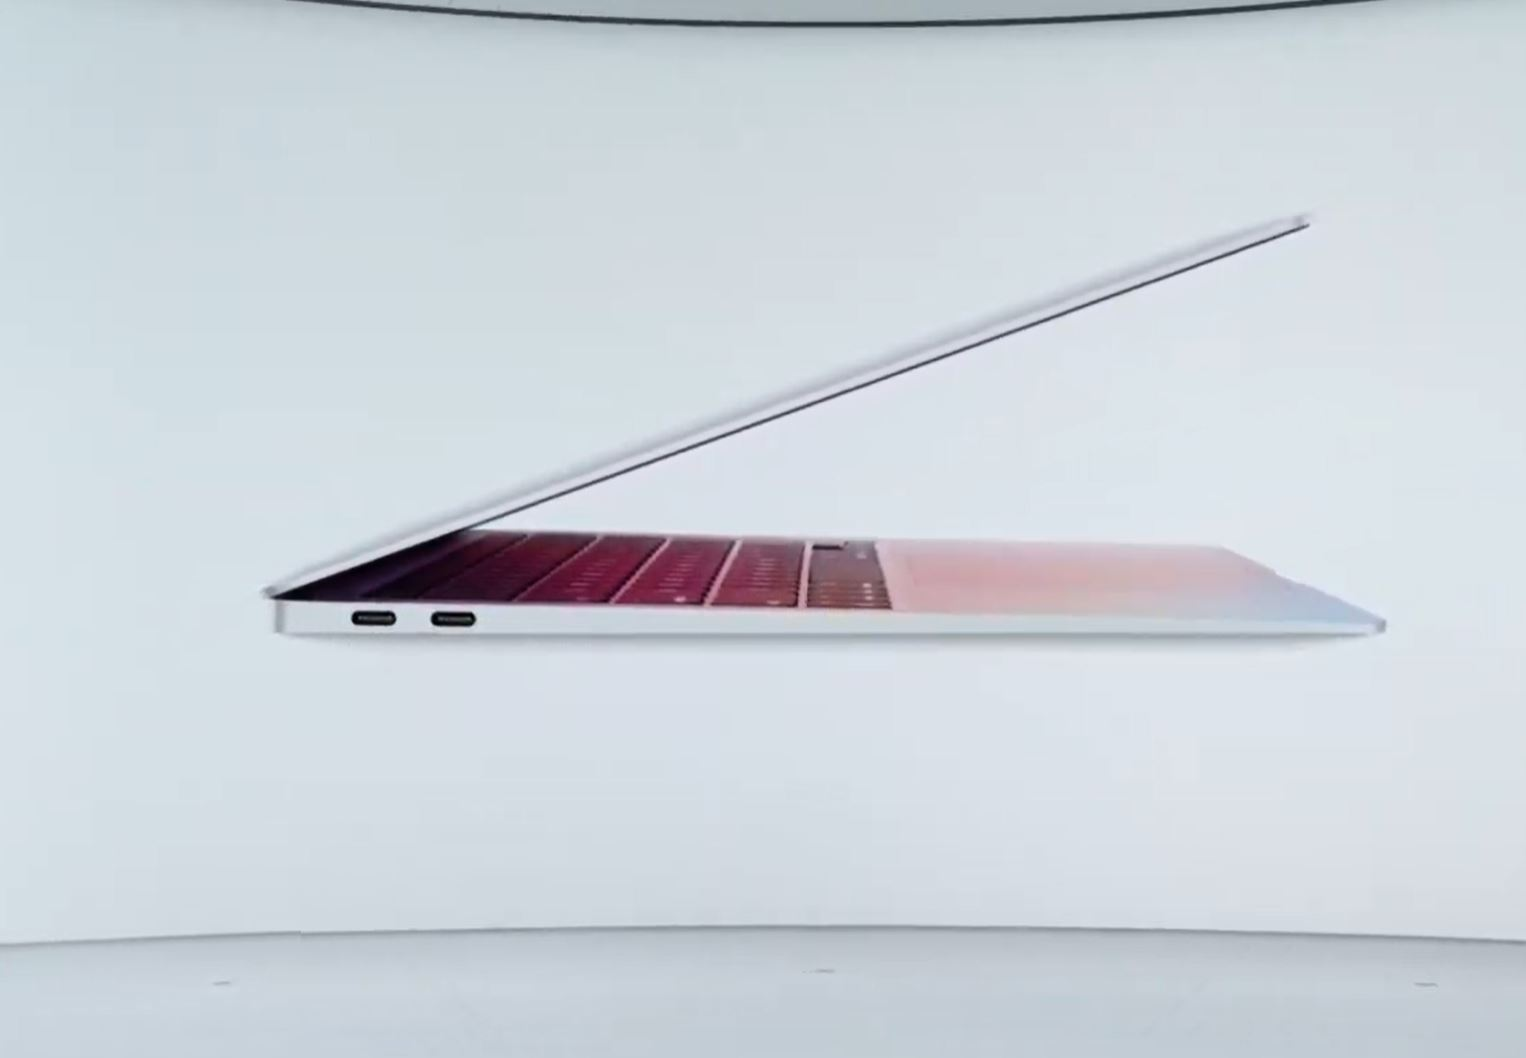 MacBook Air gets dedicated Dictation, Spotlight and Do Not Disturb function keys